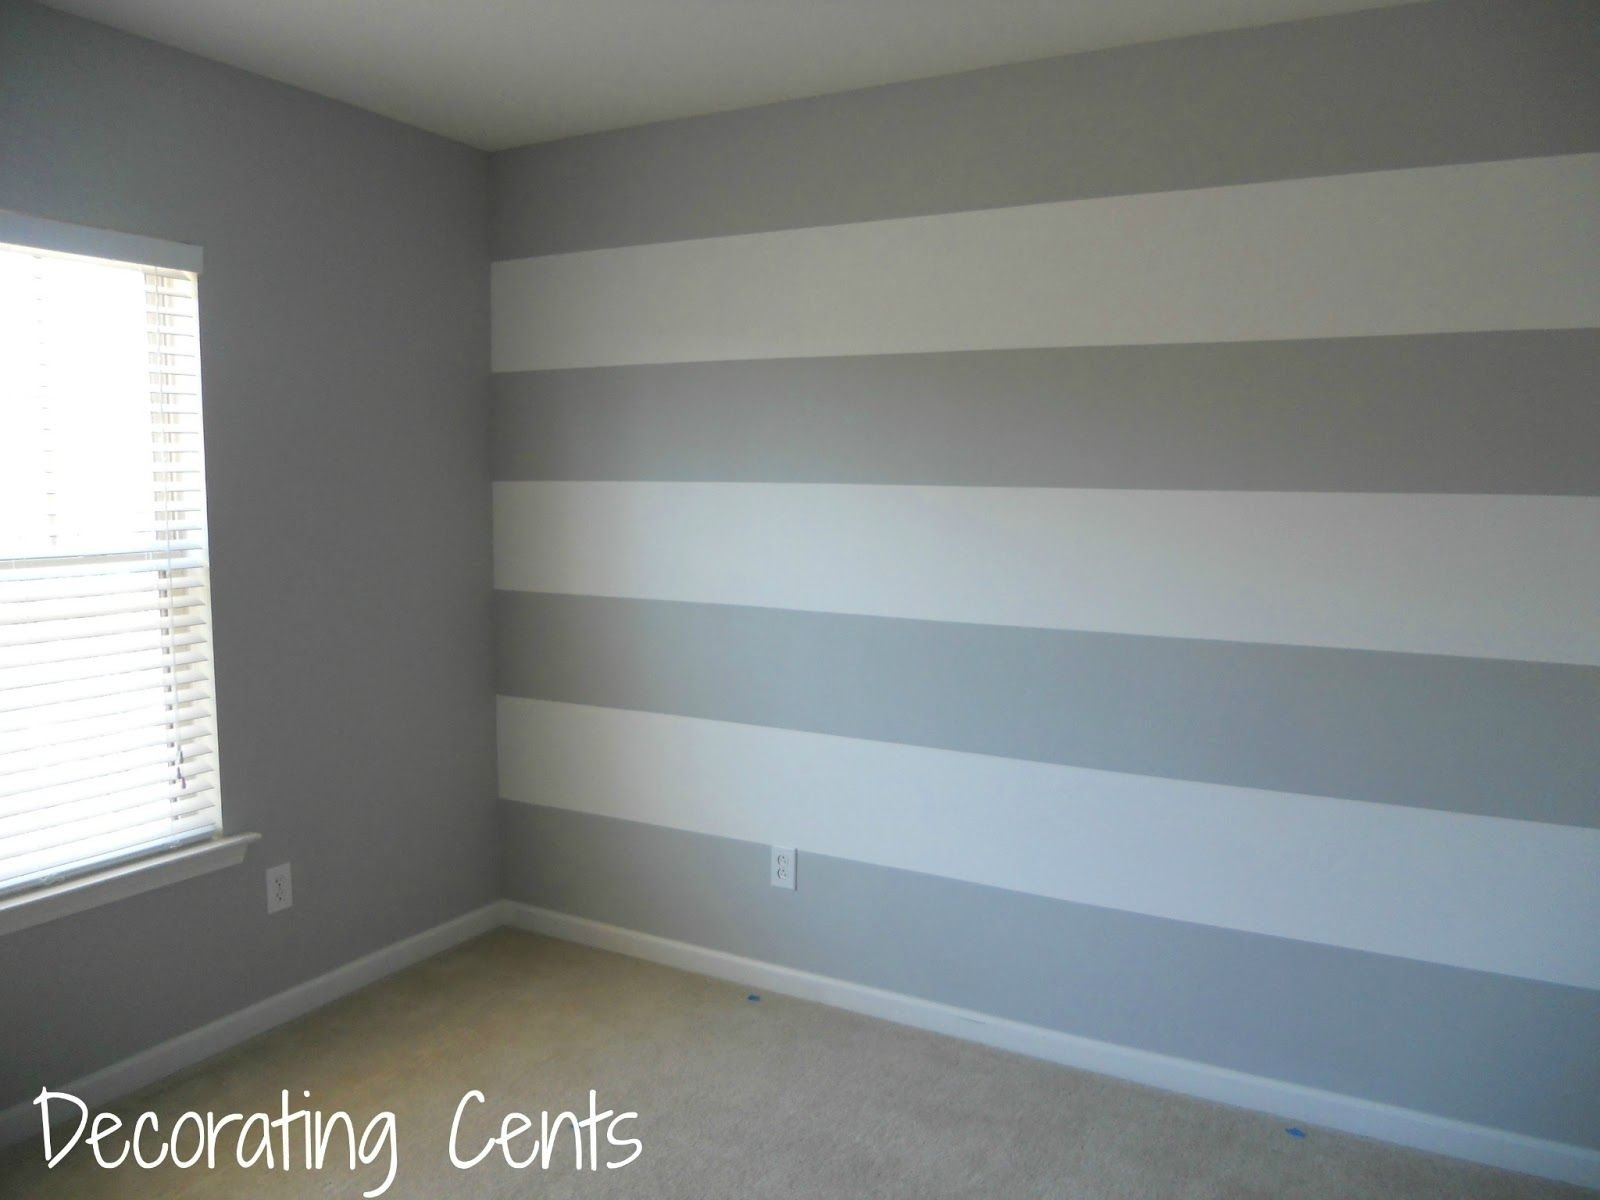 Decorating Cents: Painting A Striped Wall | Bedrooms | Pinterest In Most Recently Released Vertical Stripes Wall Accents (Gallery 8 of 15)